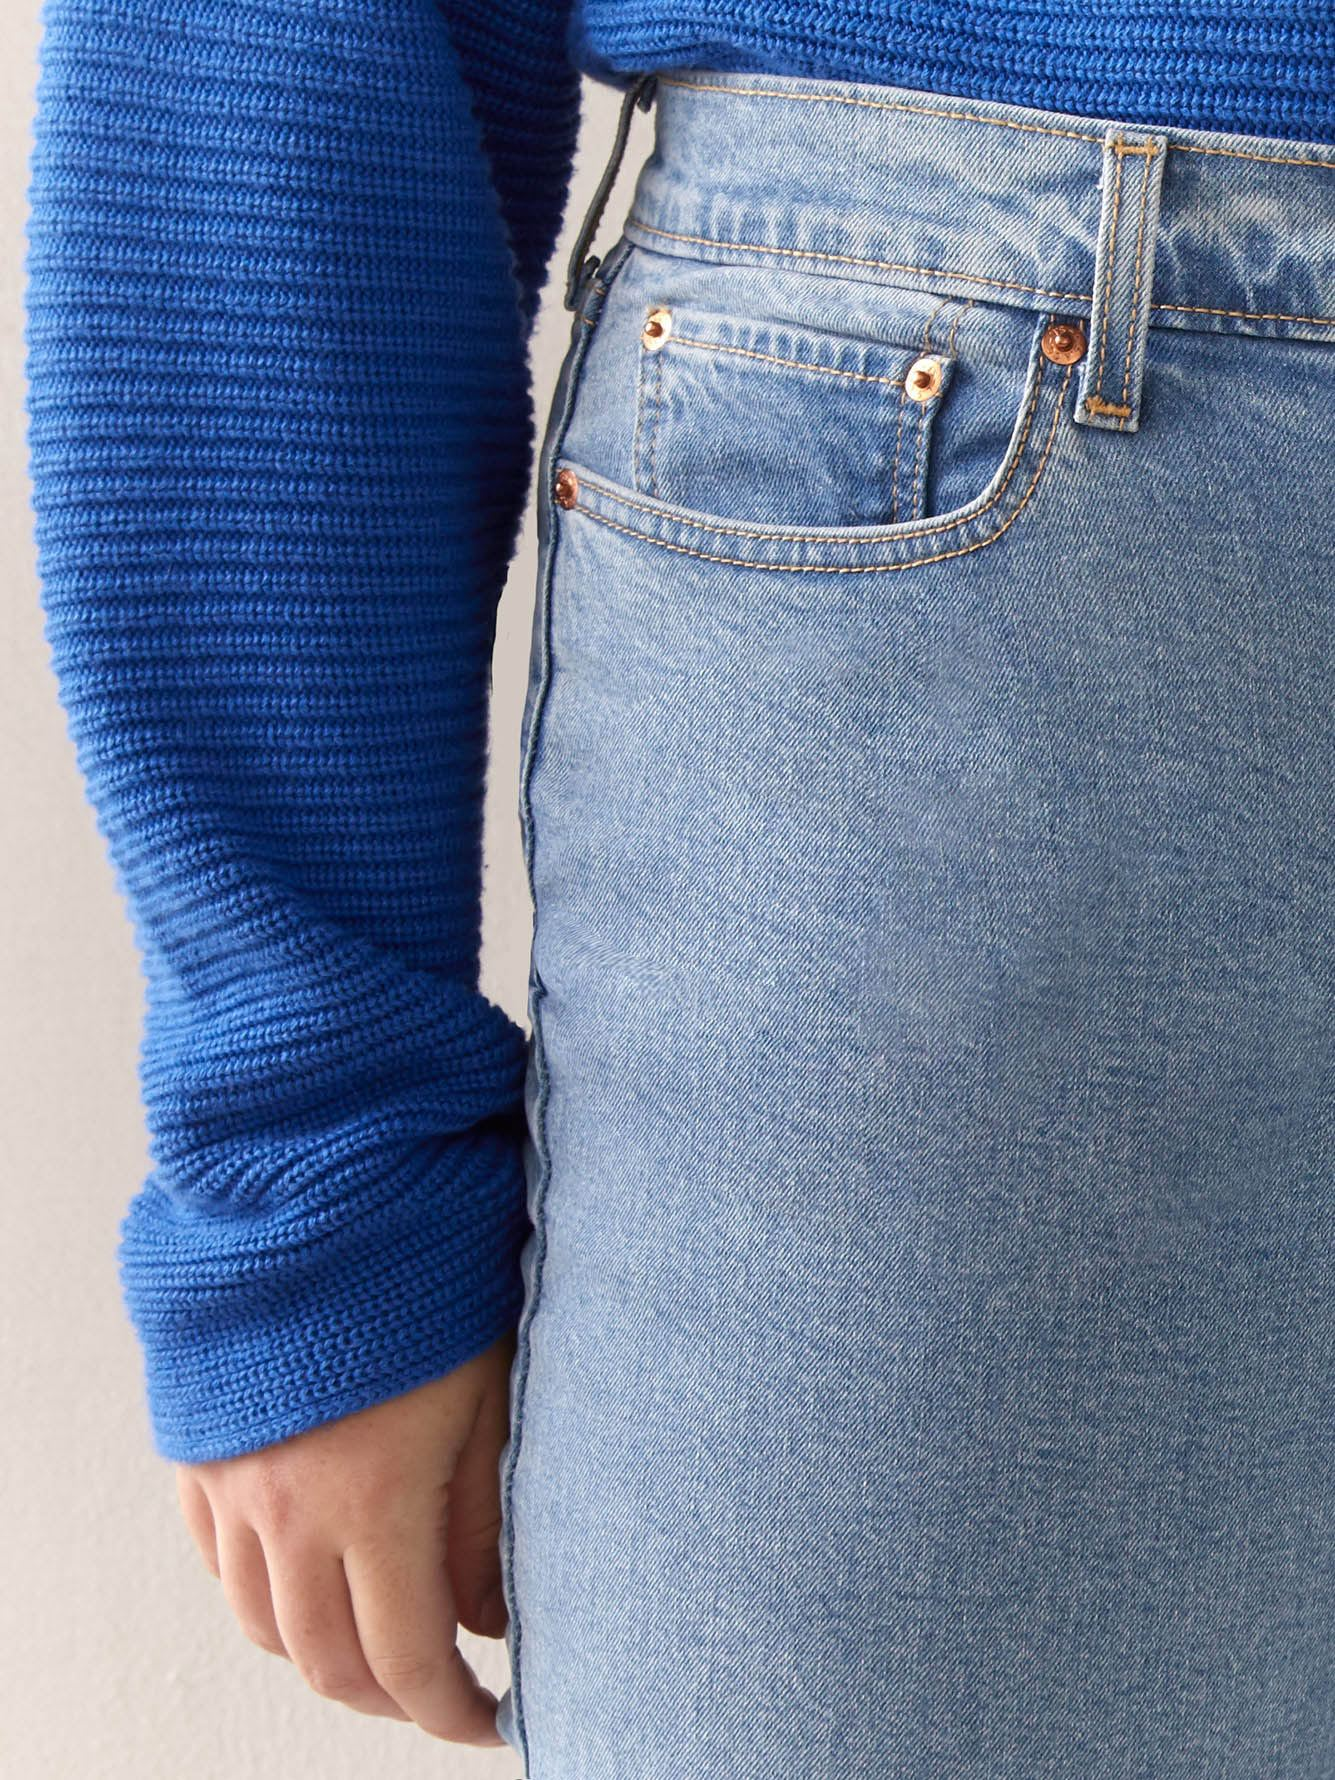 Stretchy High-Waisted Wedgie Jean - Levi's Premium